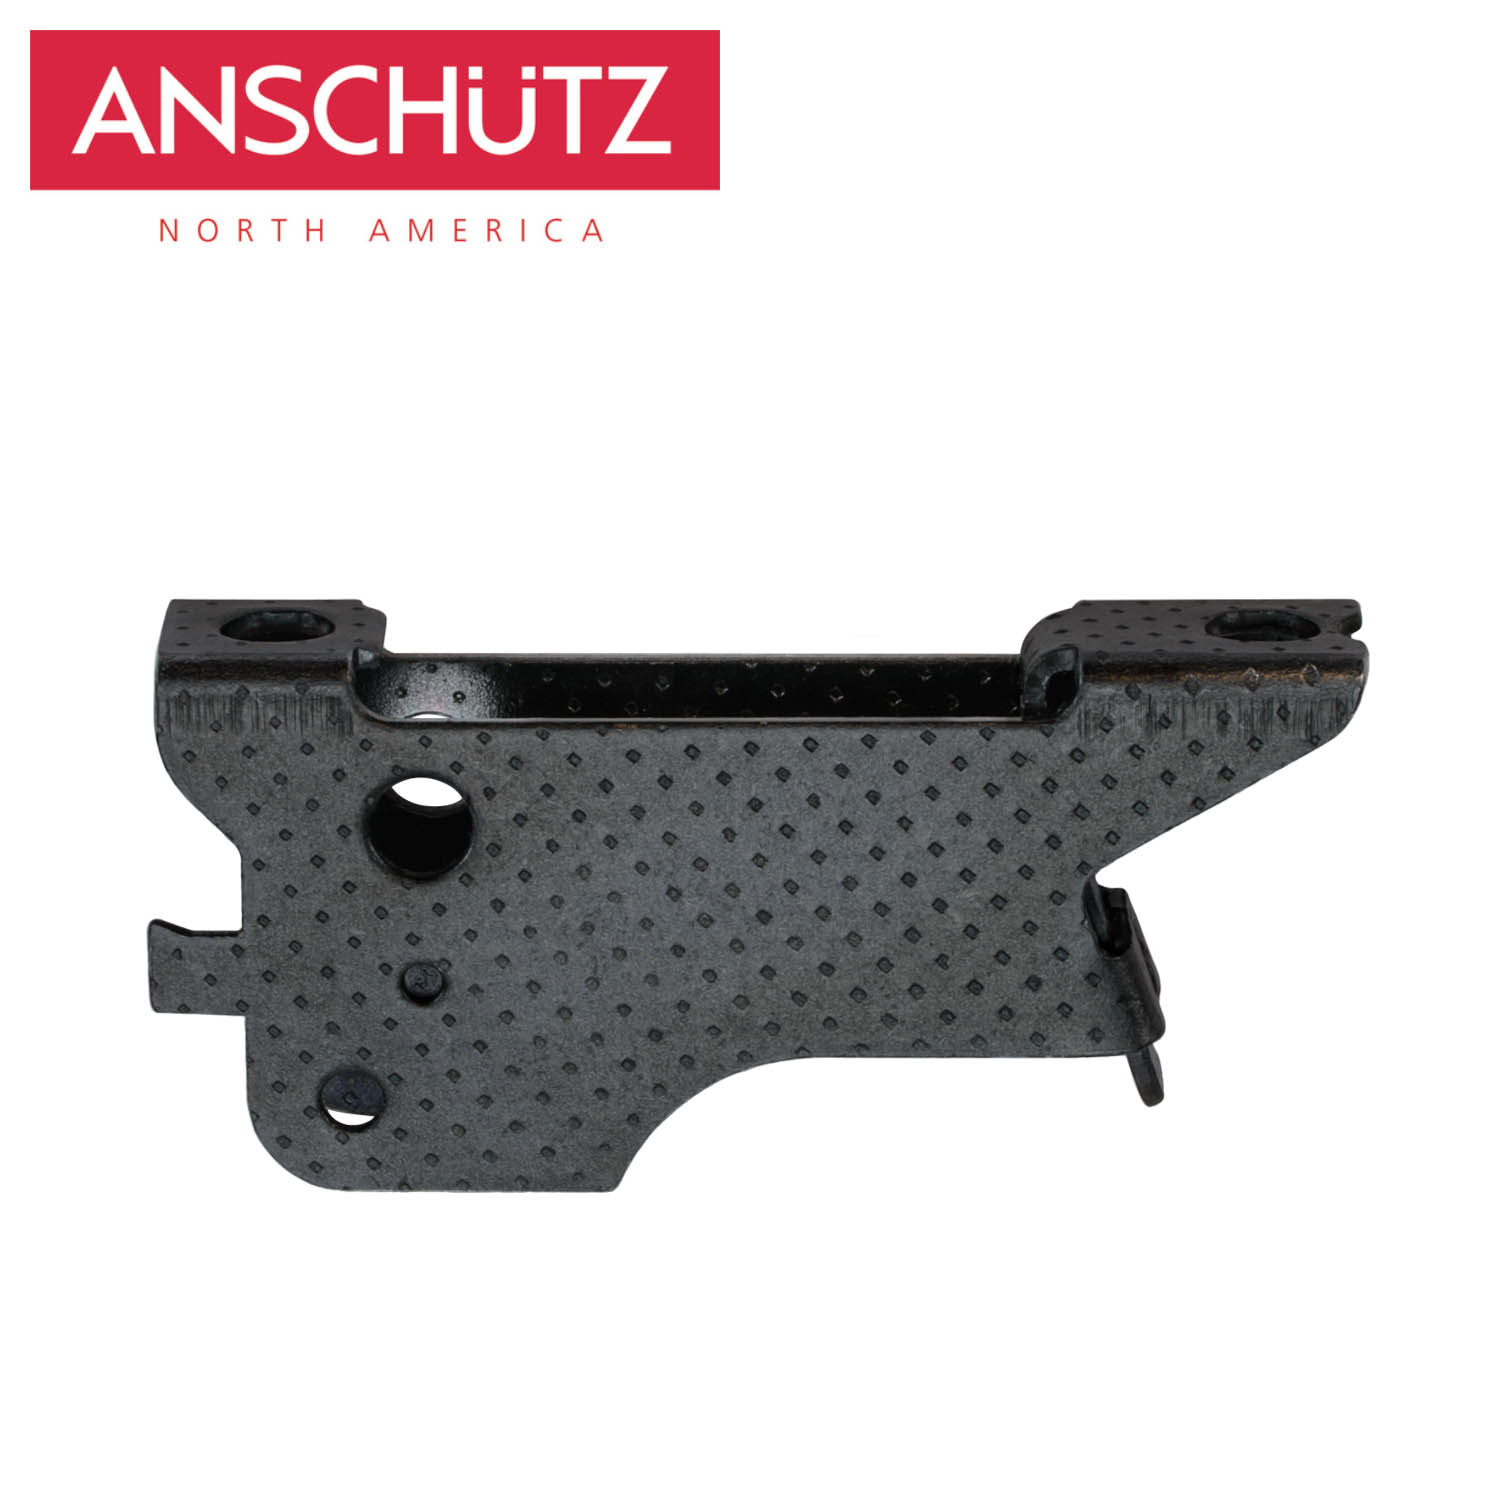 Anschutz 54 Action Magazine Guide: Midwest Gun Works